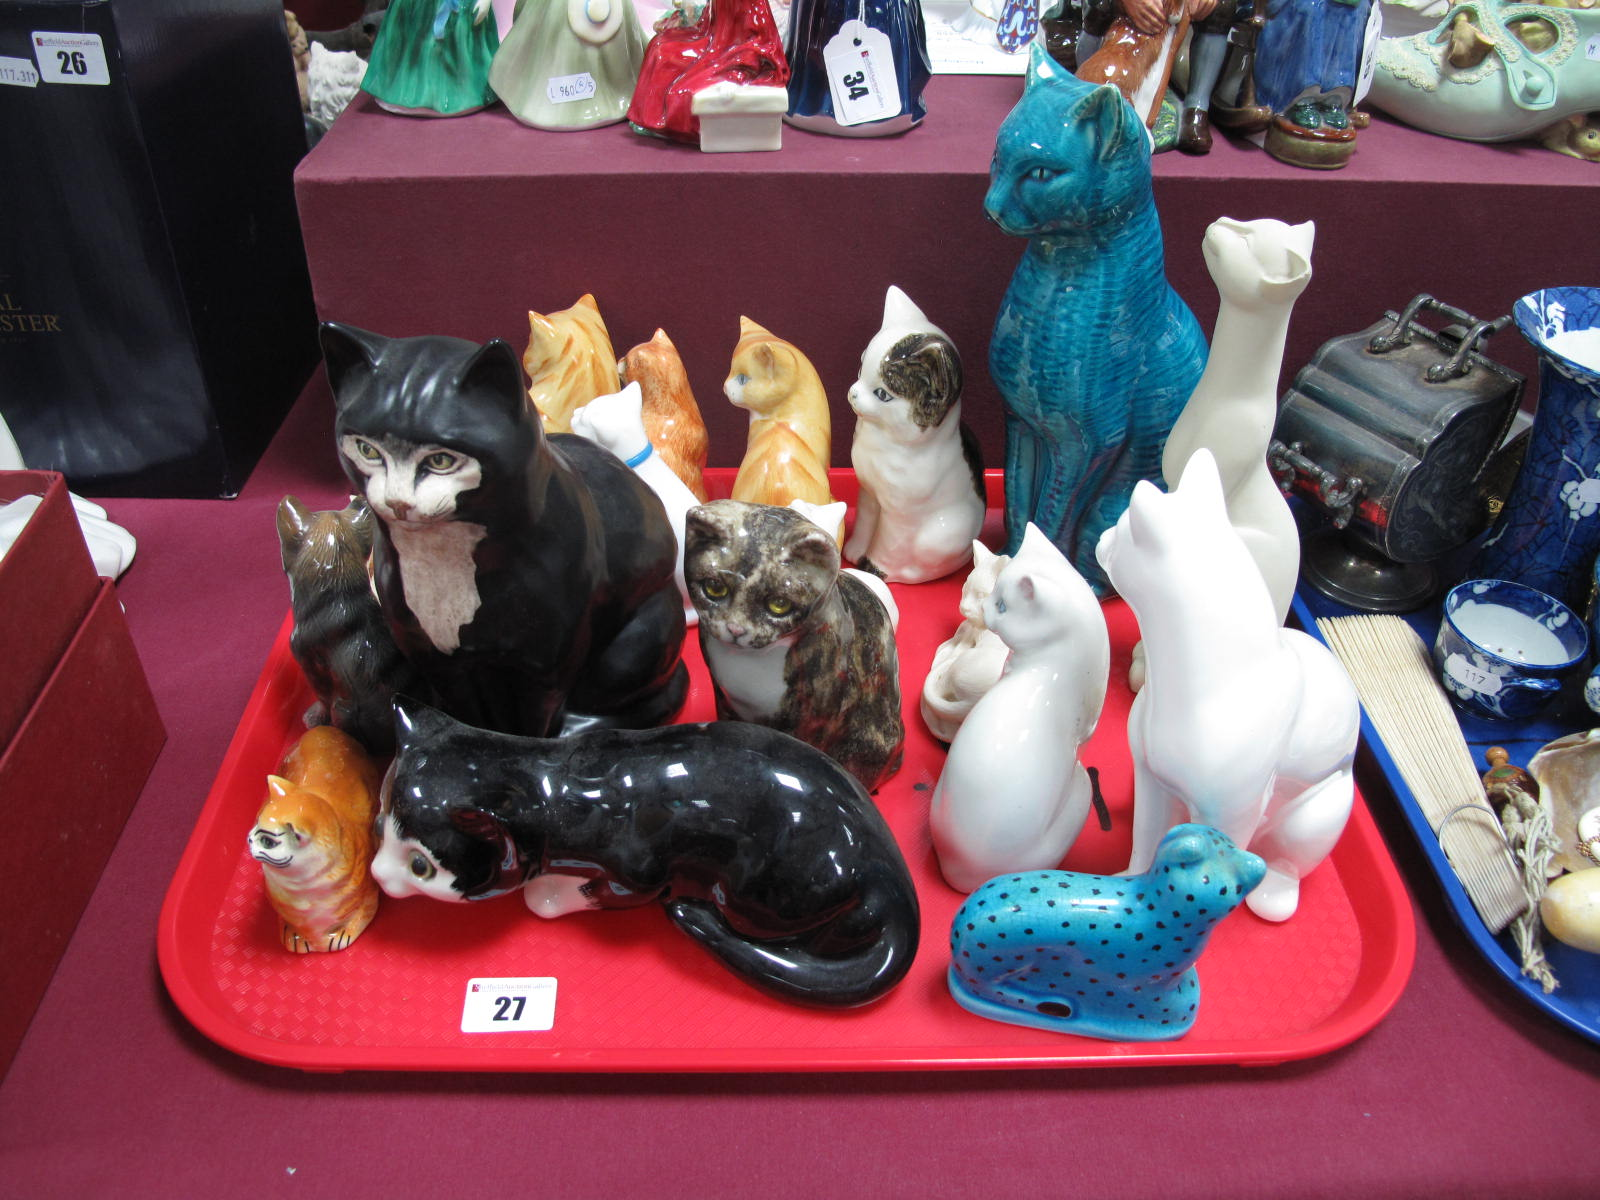 Lot 27 - Winstanley, Doulton, Leonardo and Other (Mainly) Pottery Cats:- One Tray